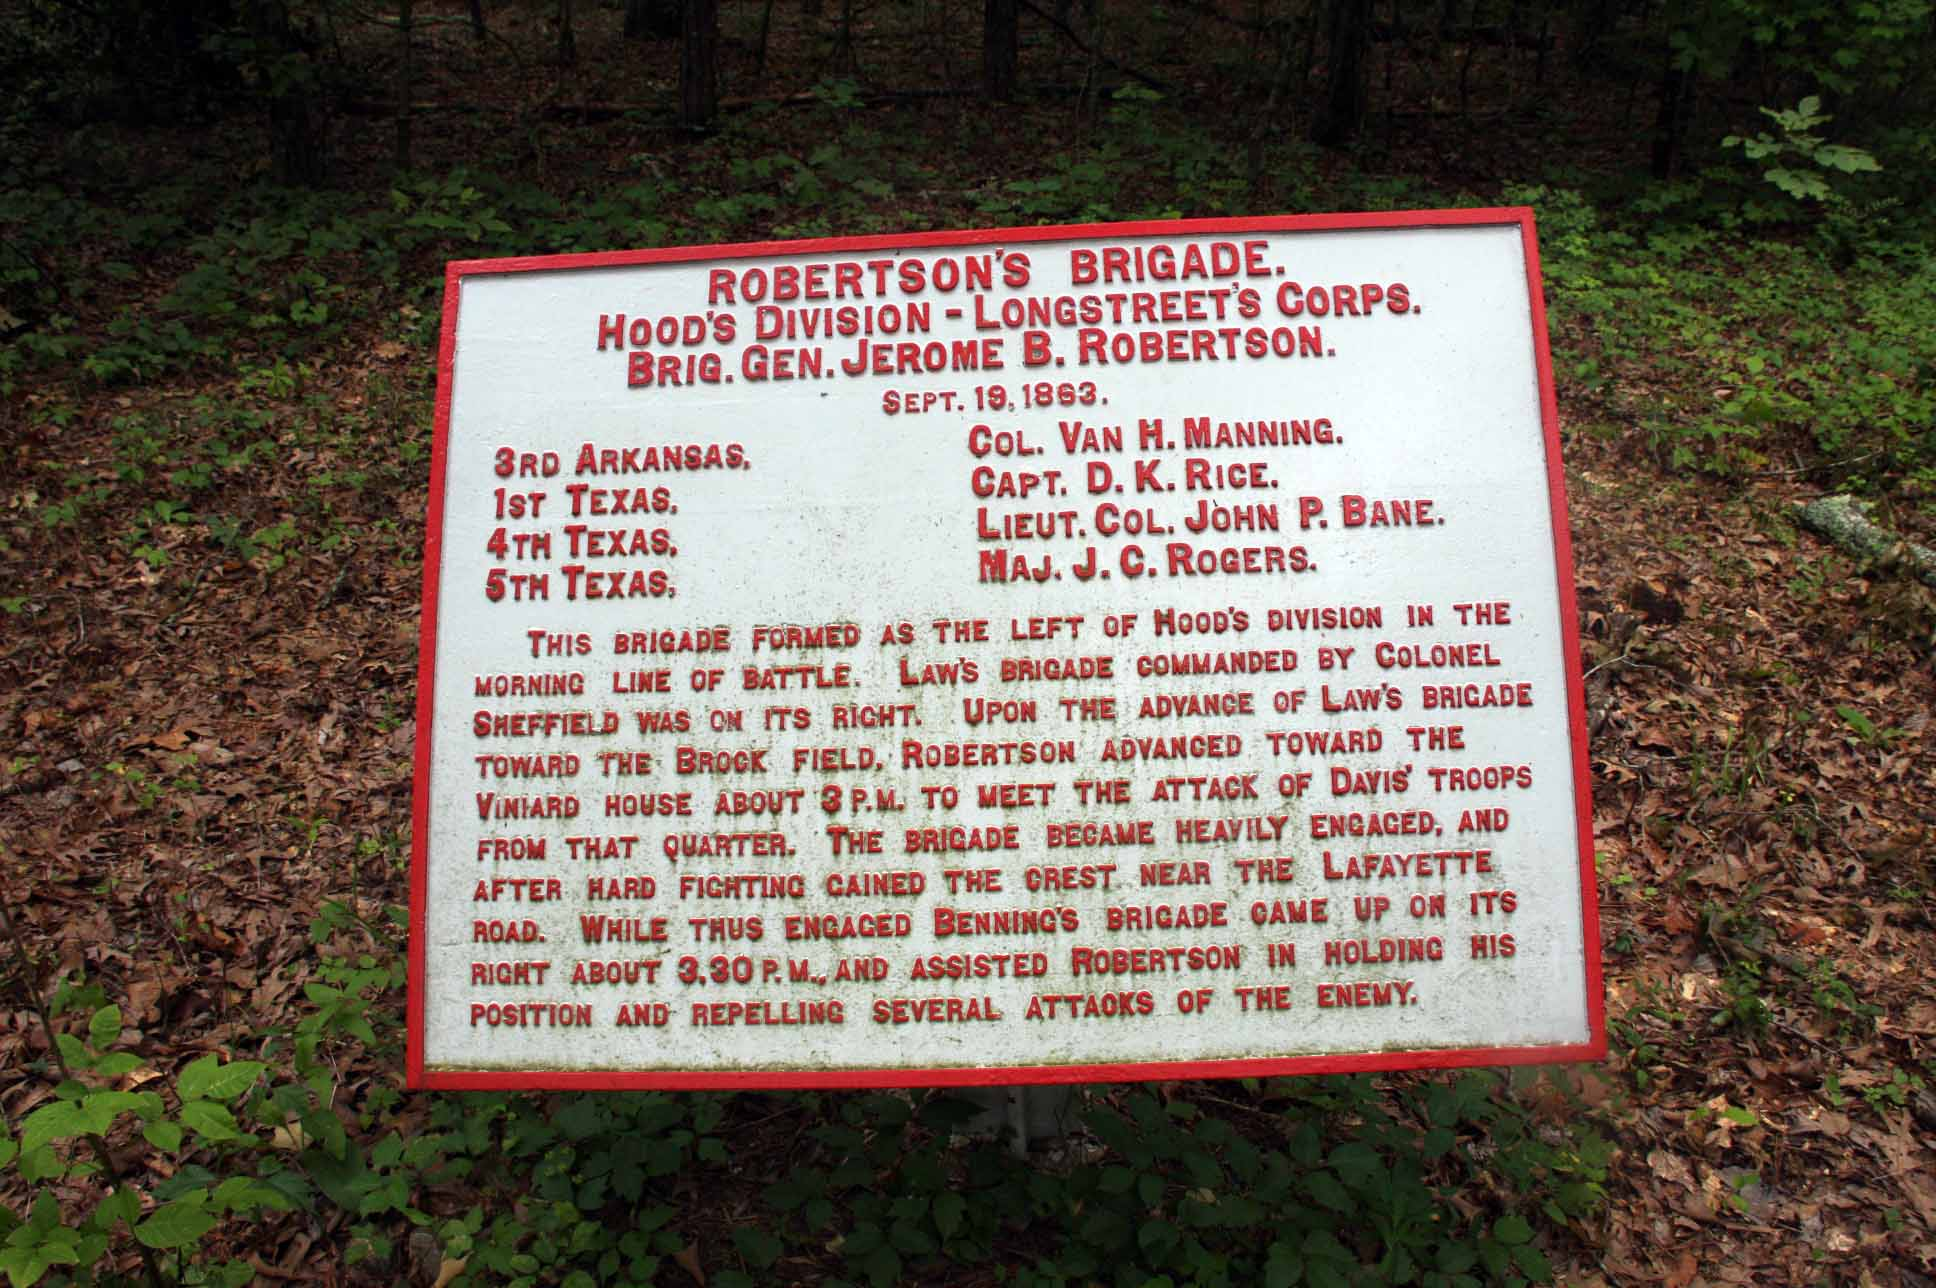 Robertson's Brigade Tablet, click photo to enlarge.